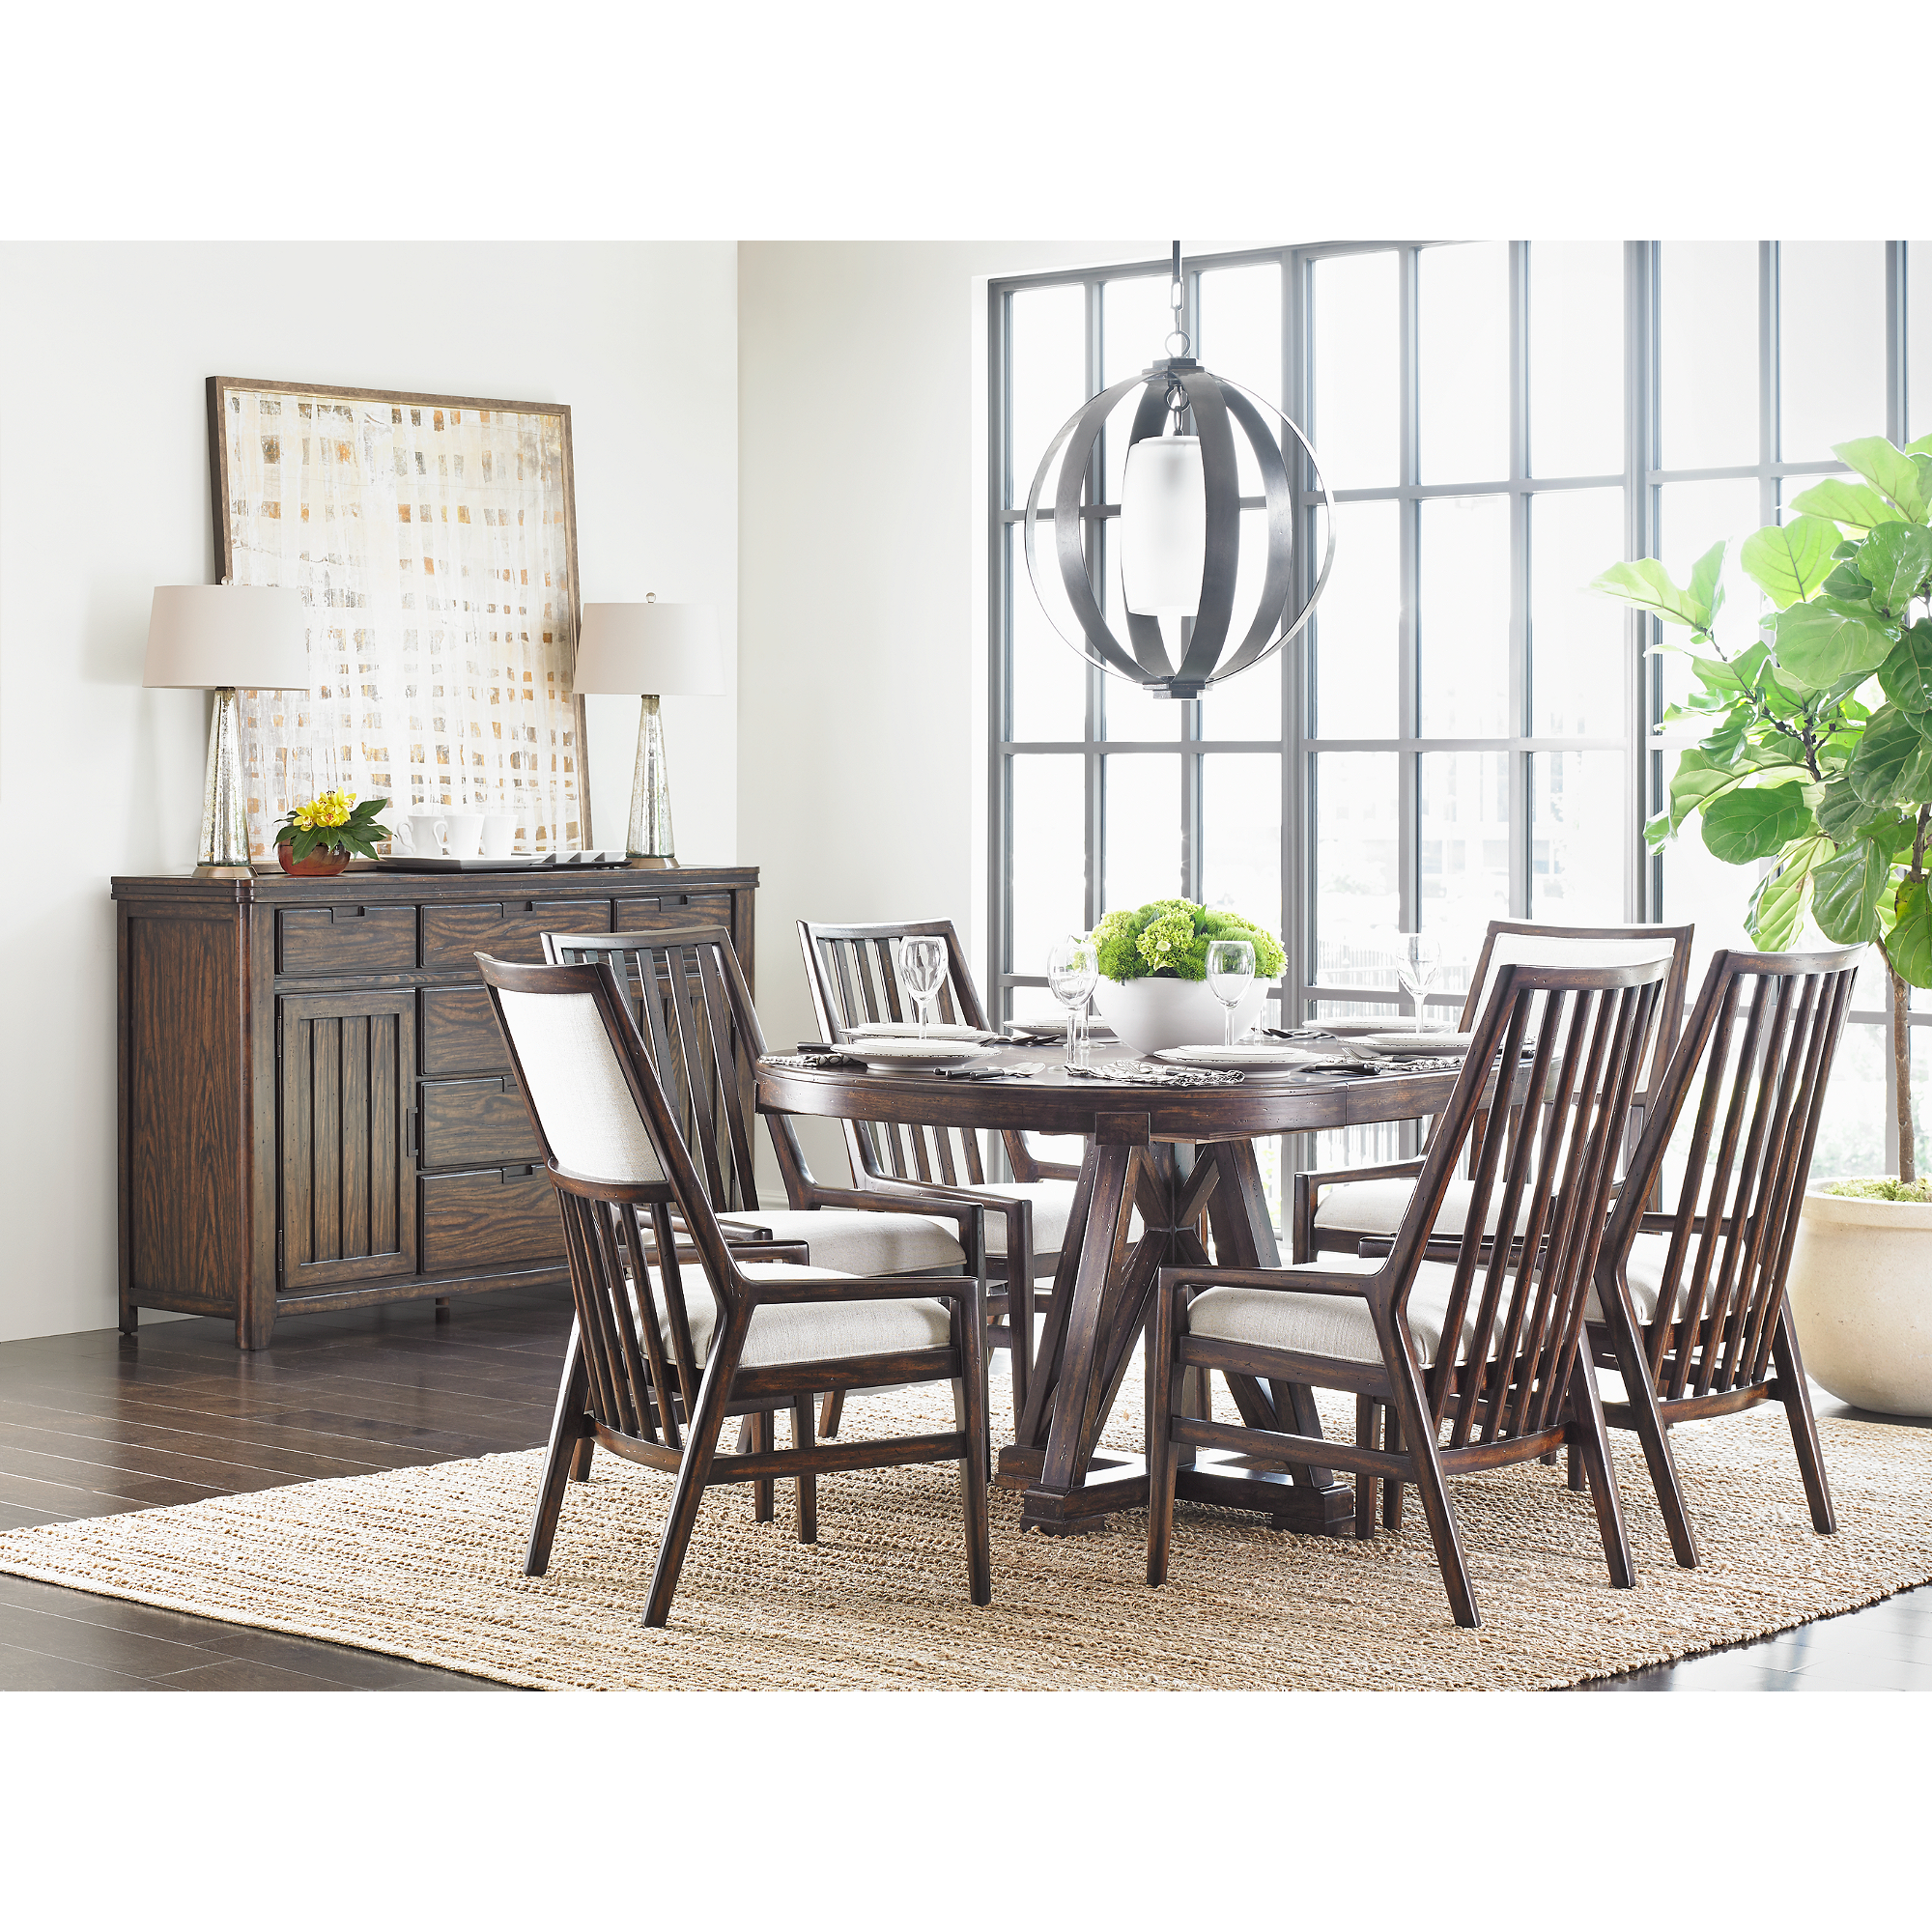 Stanley furniture dining room